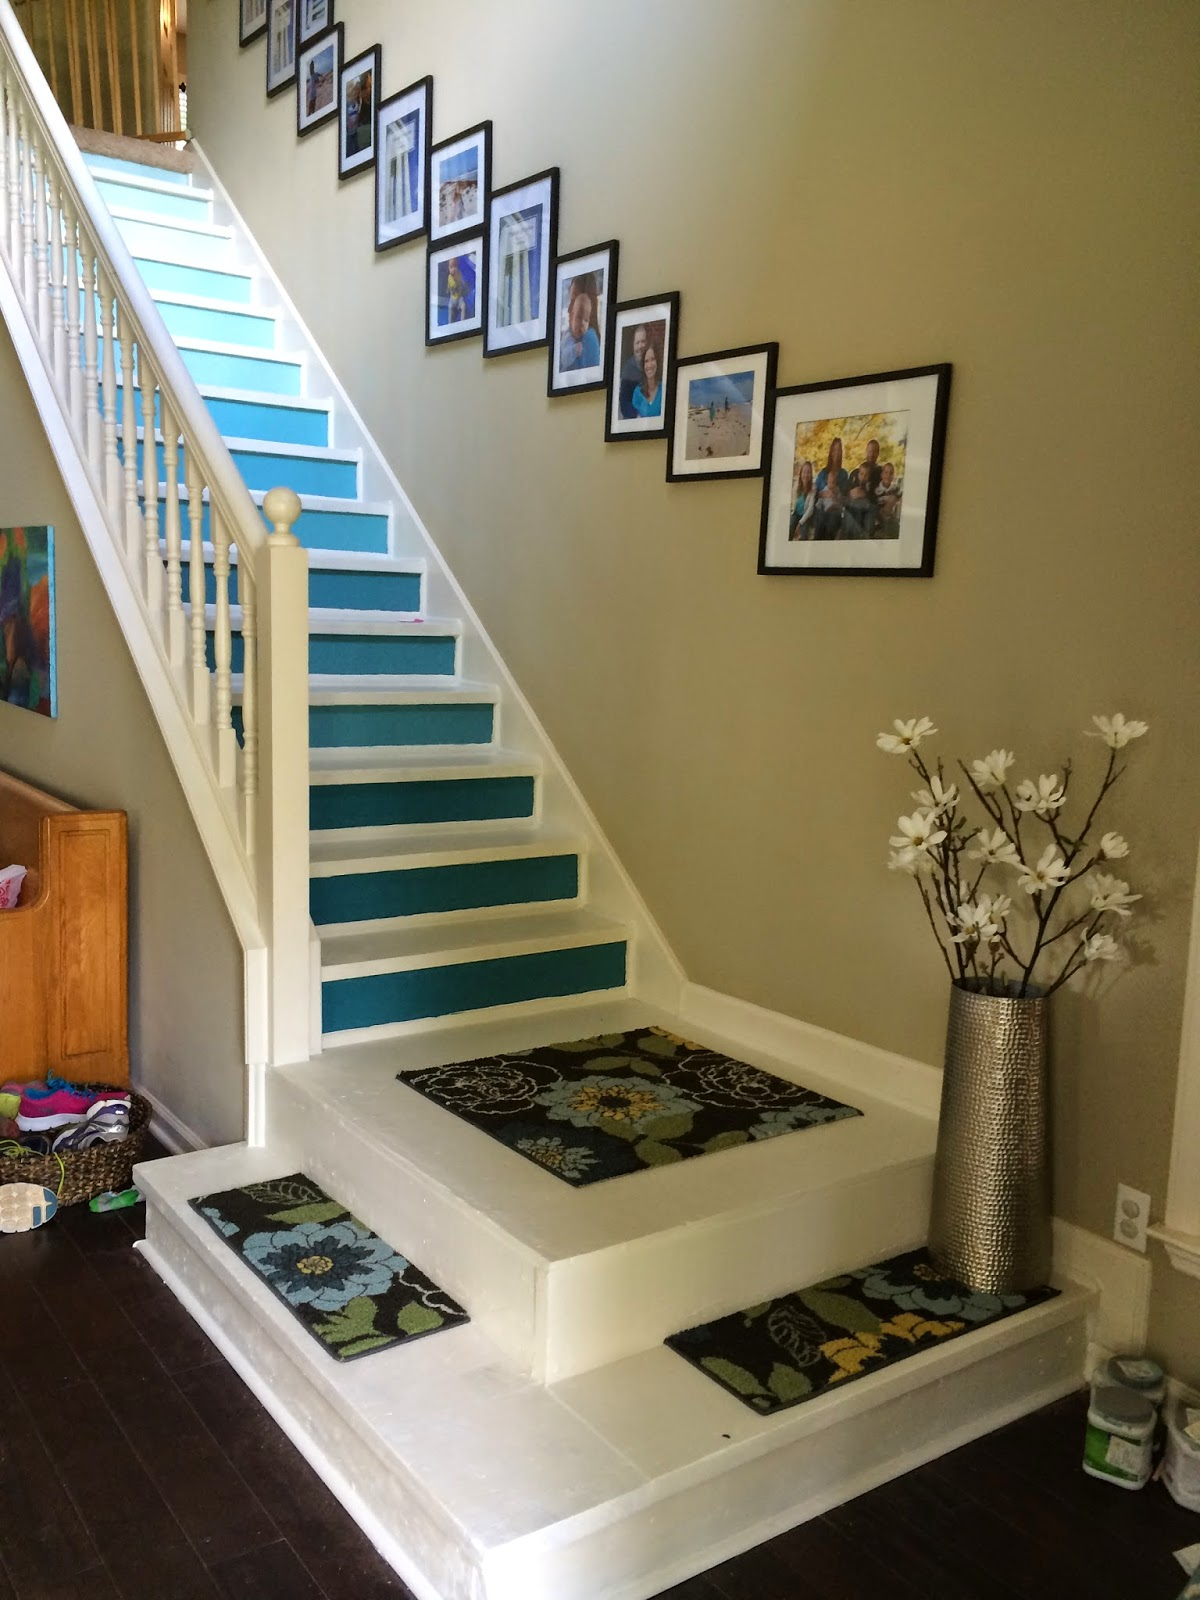 However, I Showed You The Stairs A Couple Of Posts Ago So I Thought Iu0027d  Show You How I Did It. Here Is The Finished Product: